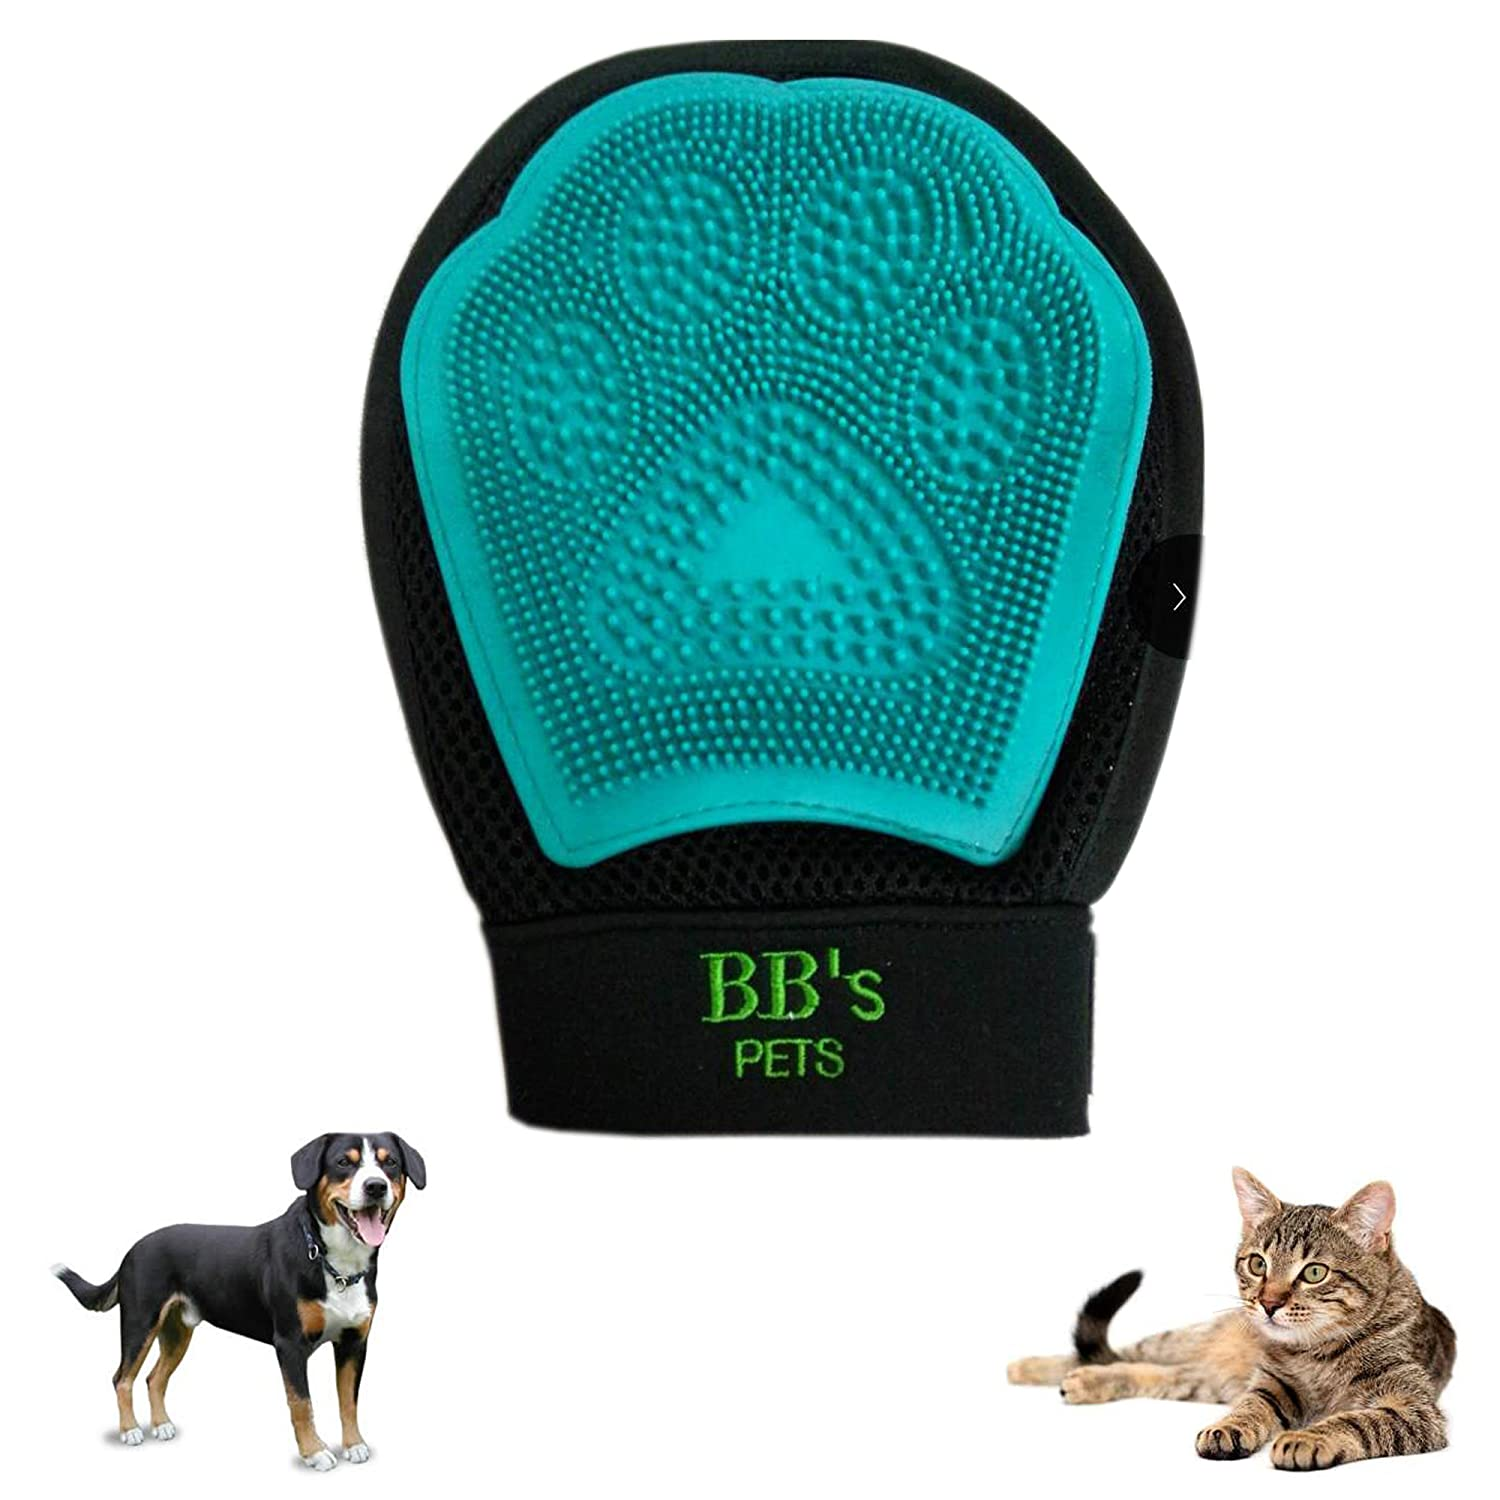 #1 BEST PET BRUSH GLOVE – DEMATTING BRUSH – FOR DOGS AND CATS – FOR LONG AND SHORT HAIR – PETS – GROOMING – BB'S PETS - YOUR PET WILL ENJOY IT! BB'S PETS